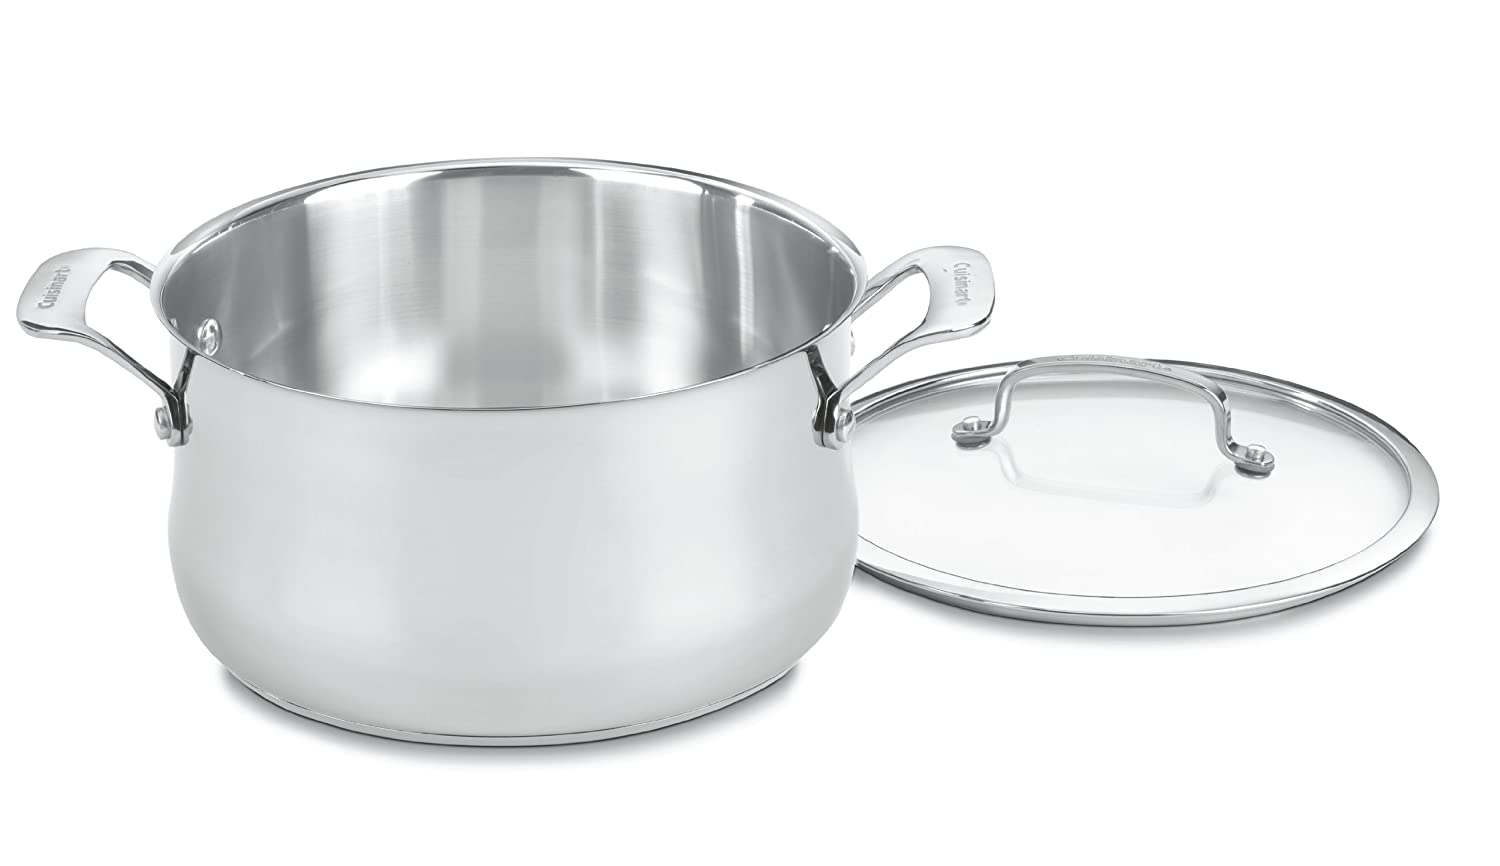 Cuisinart 444-24 Contour Stainless 6-Quart Saucepot with Glass Cover